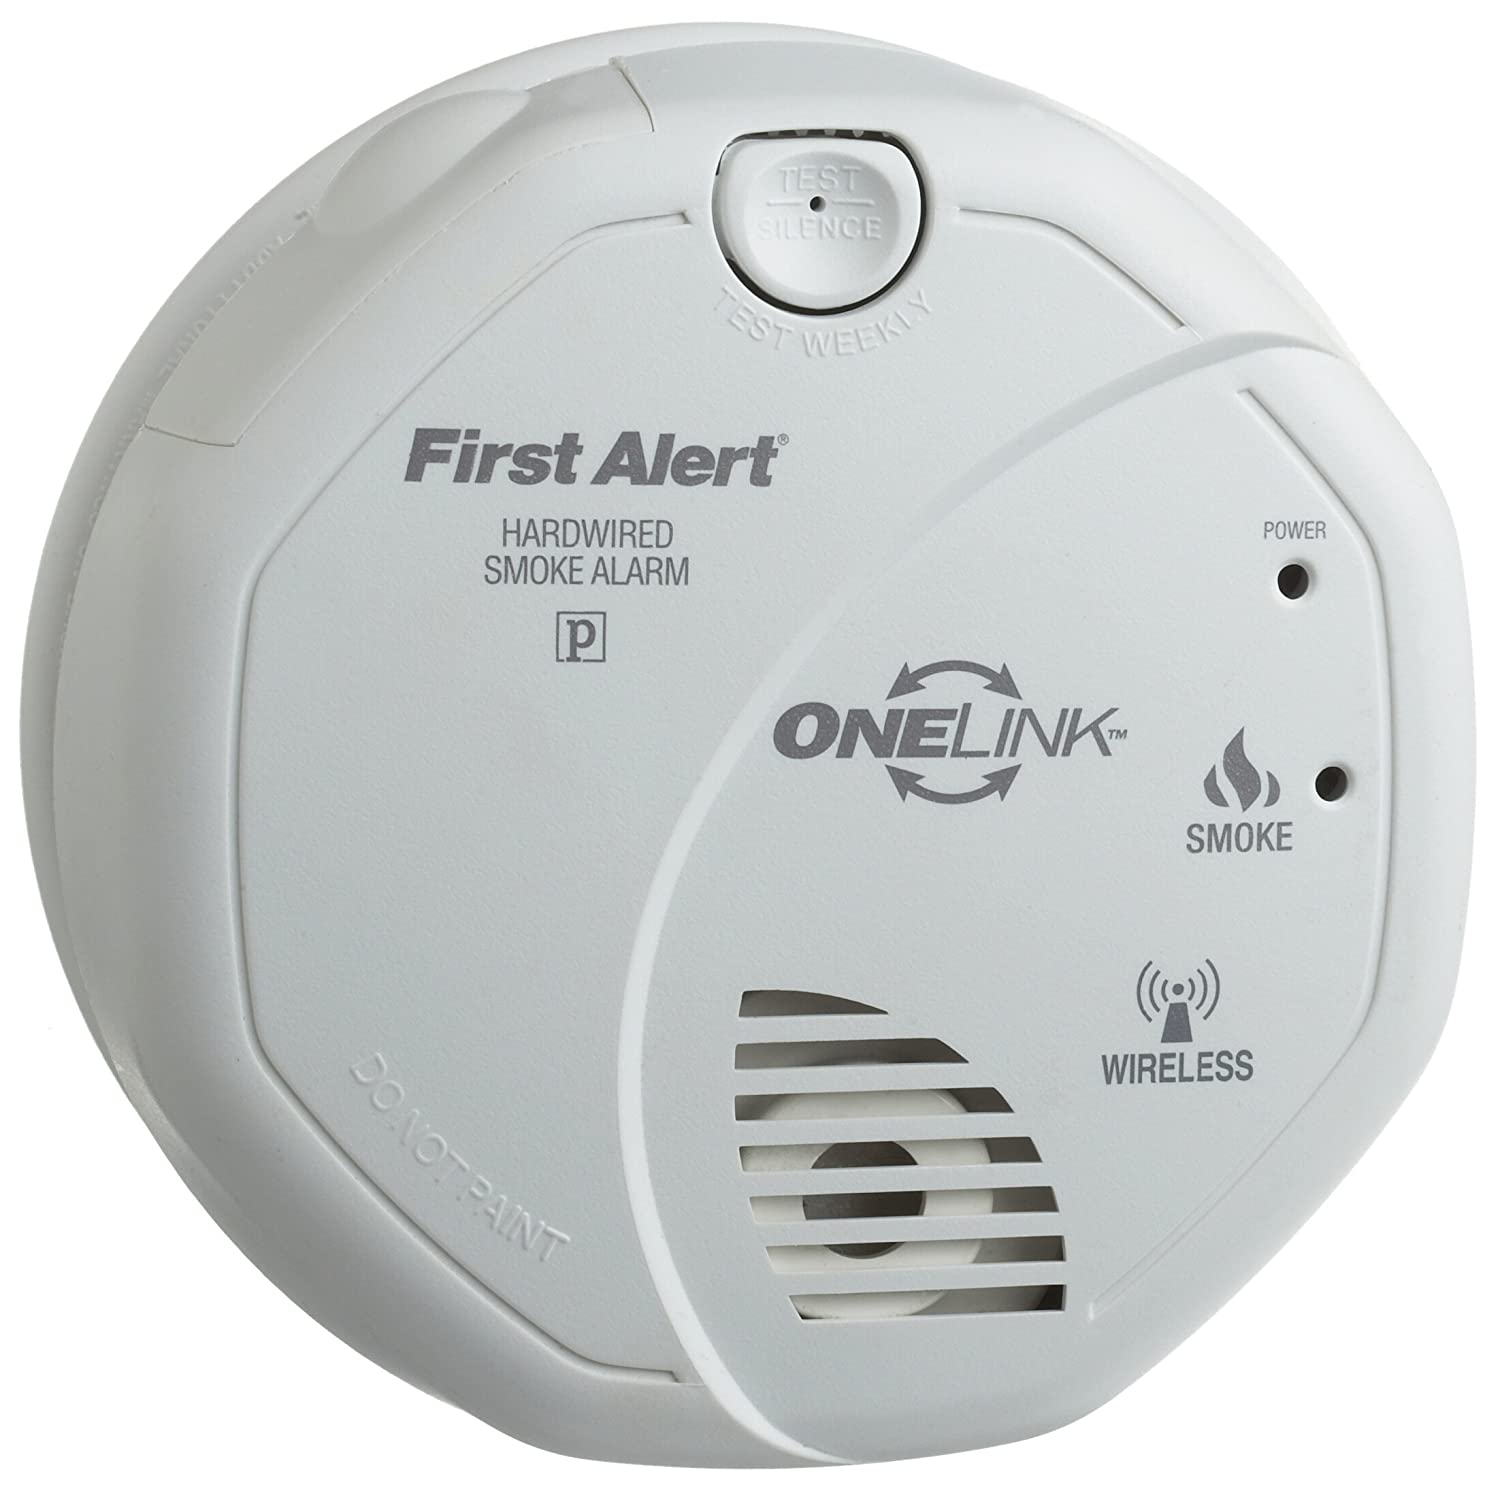 The Best Smoke Alarms Reviews Comparisons Of Top Rated Series Fire Alarm Wiring Including 4 Wire Detector Your Family With Have Seamless Monitoring Protection You Want Thanks To This Hardwired Units Battery Backup Available In Single Or Multi Packs